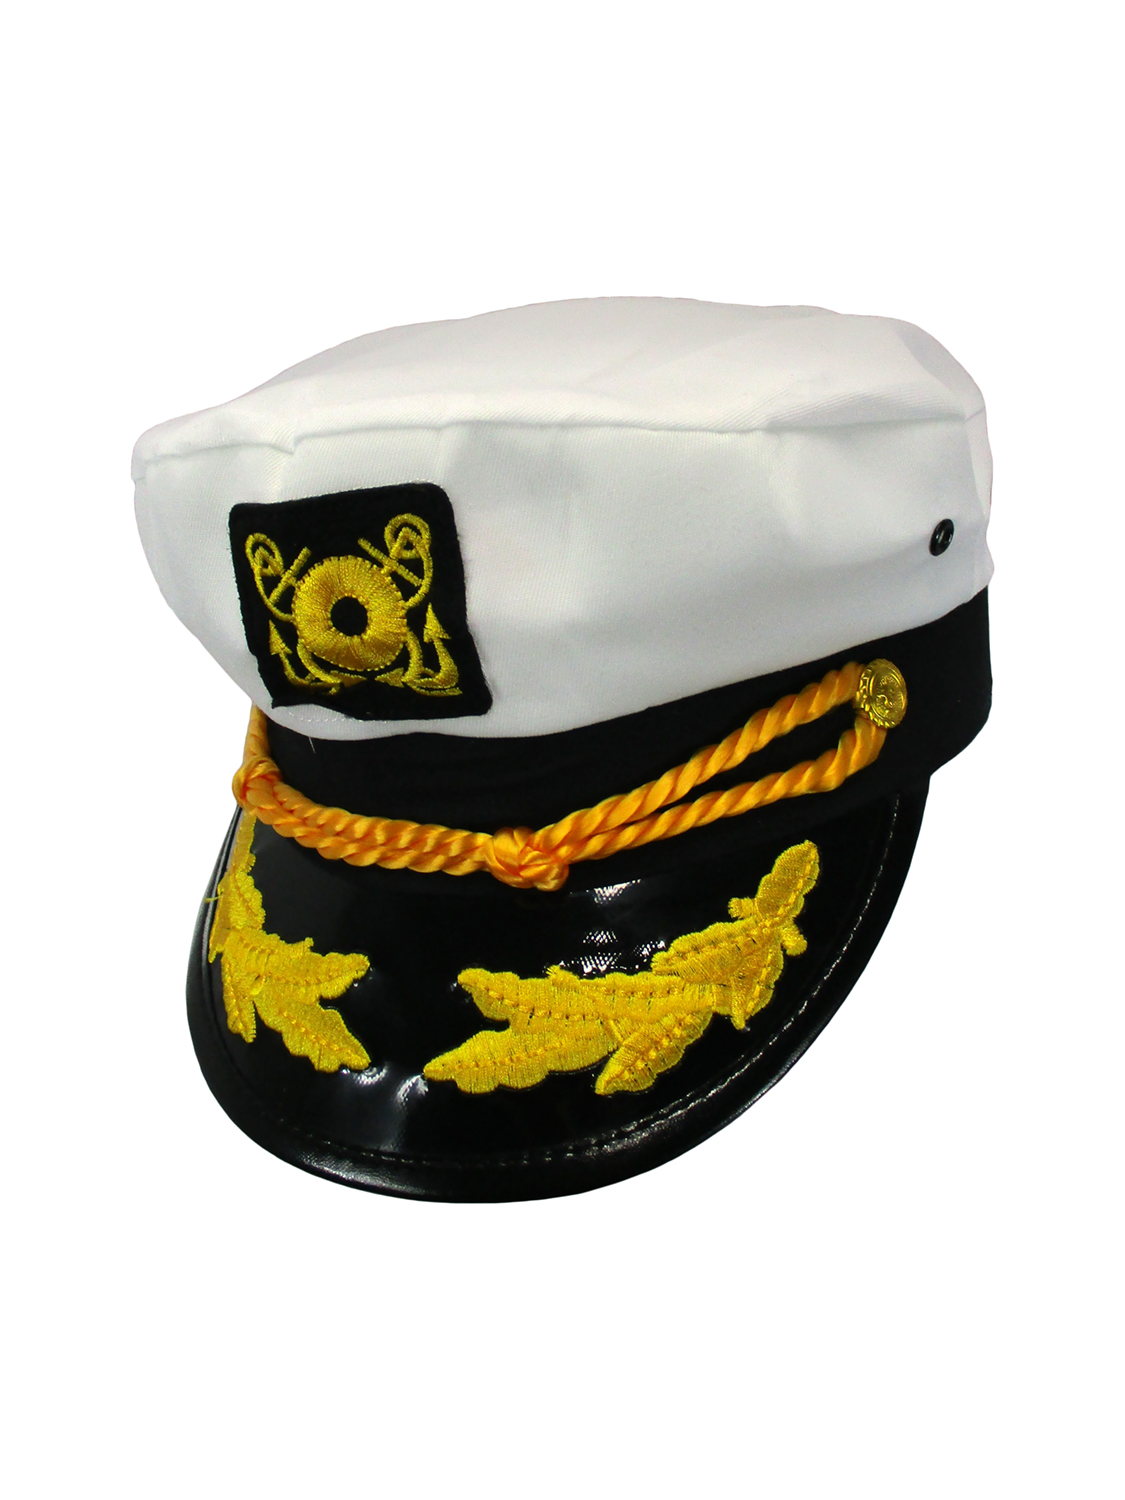 626add5117c Details about SAILOR SHIP YACHT BOAT CAPTAIN HAT NAVY MARINES ADMIRAL CAP  HAT WHITE GOLD 23400